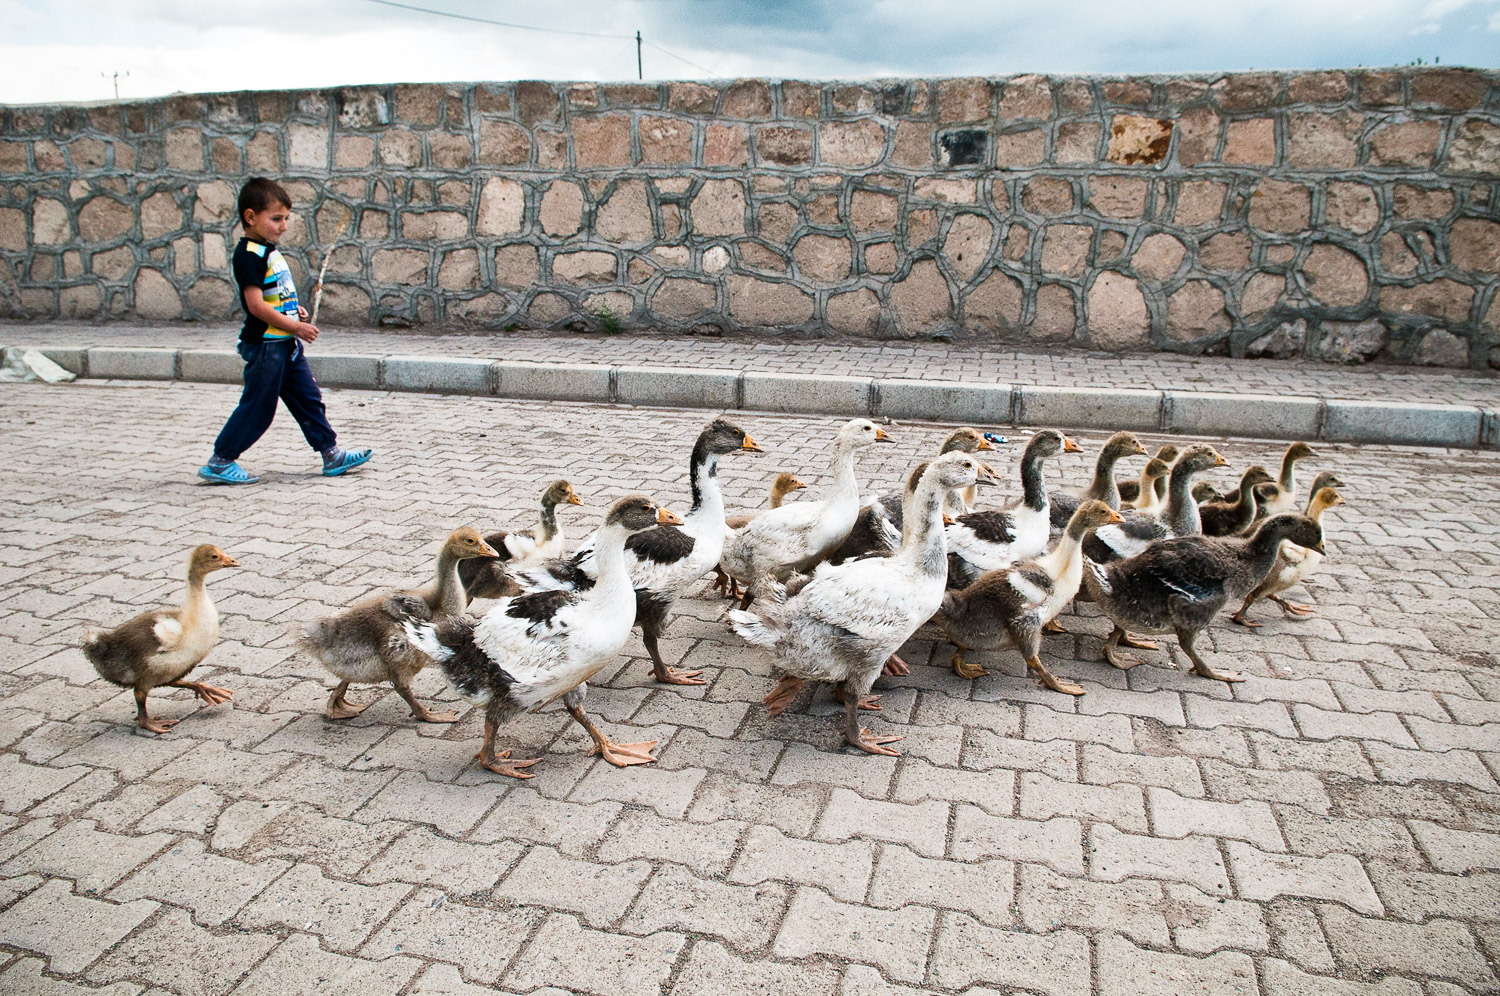 Boy and geese, Kars Turkey.